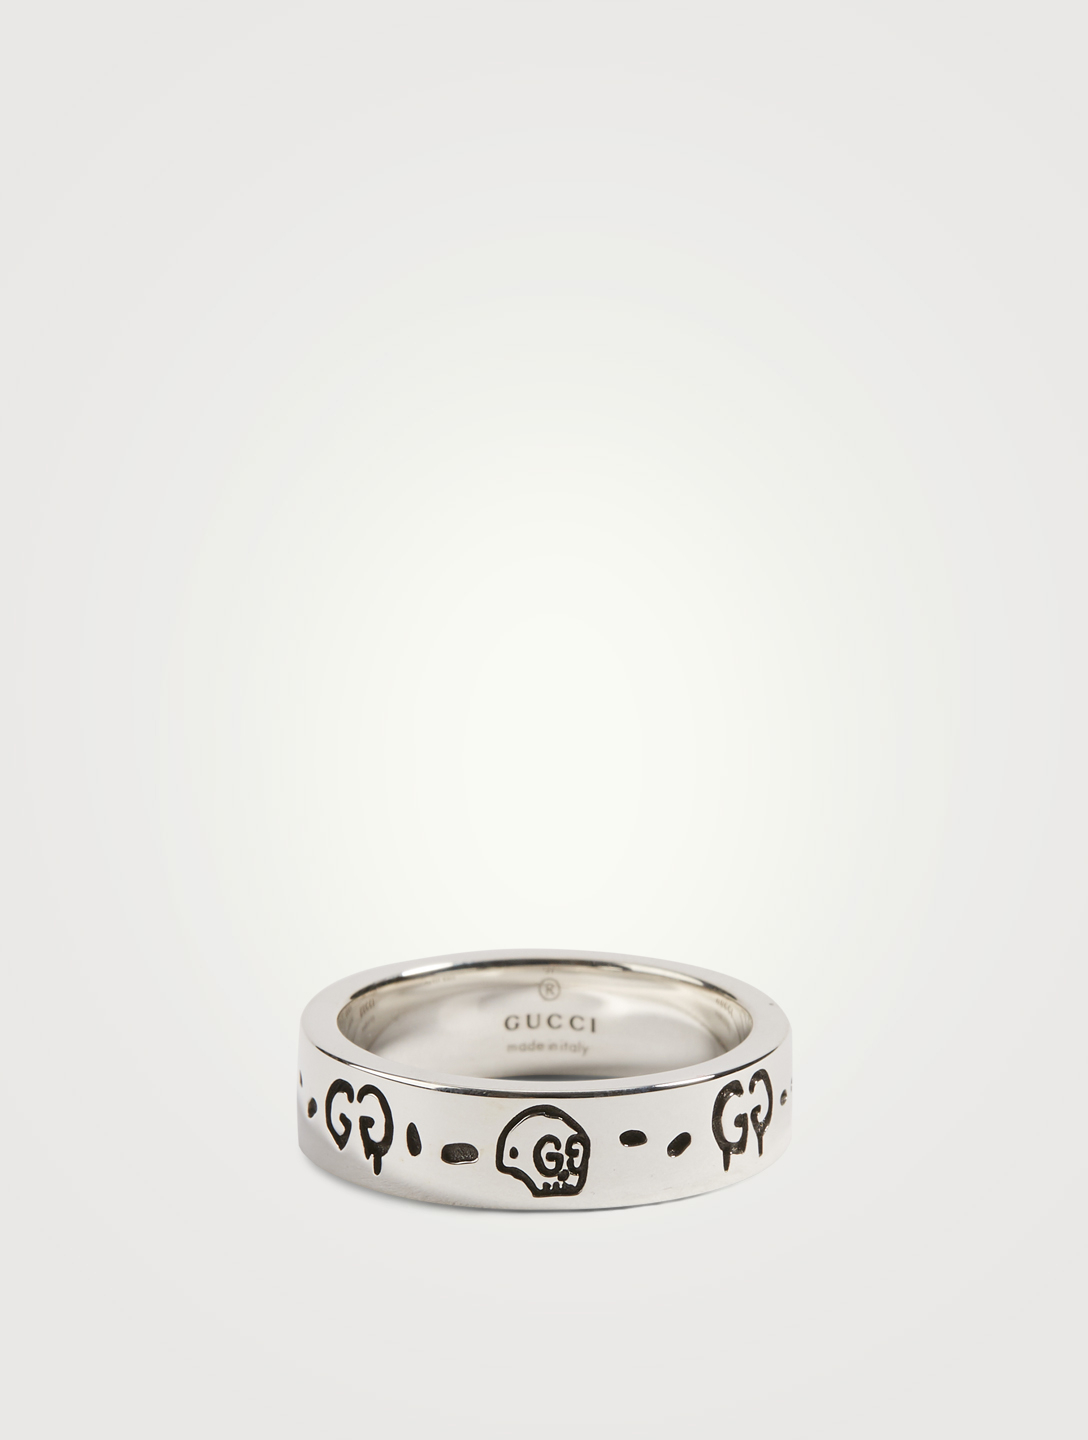 GUCCI GucciGhost Silver Ring Women's Metallic